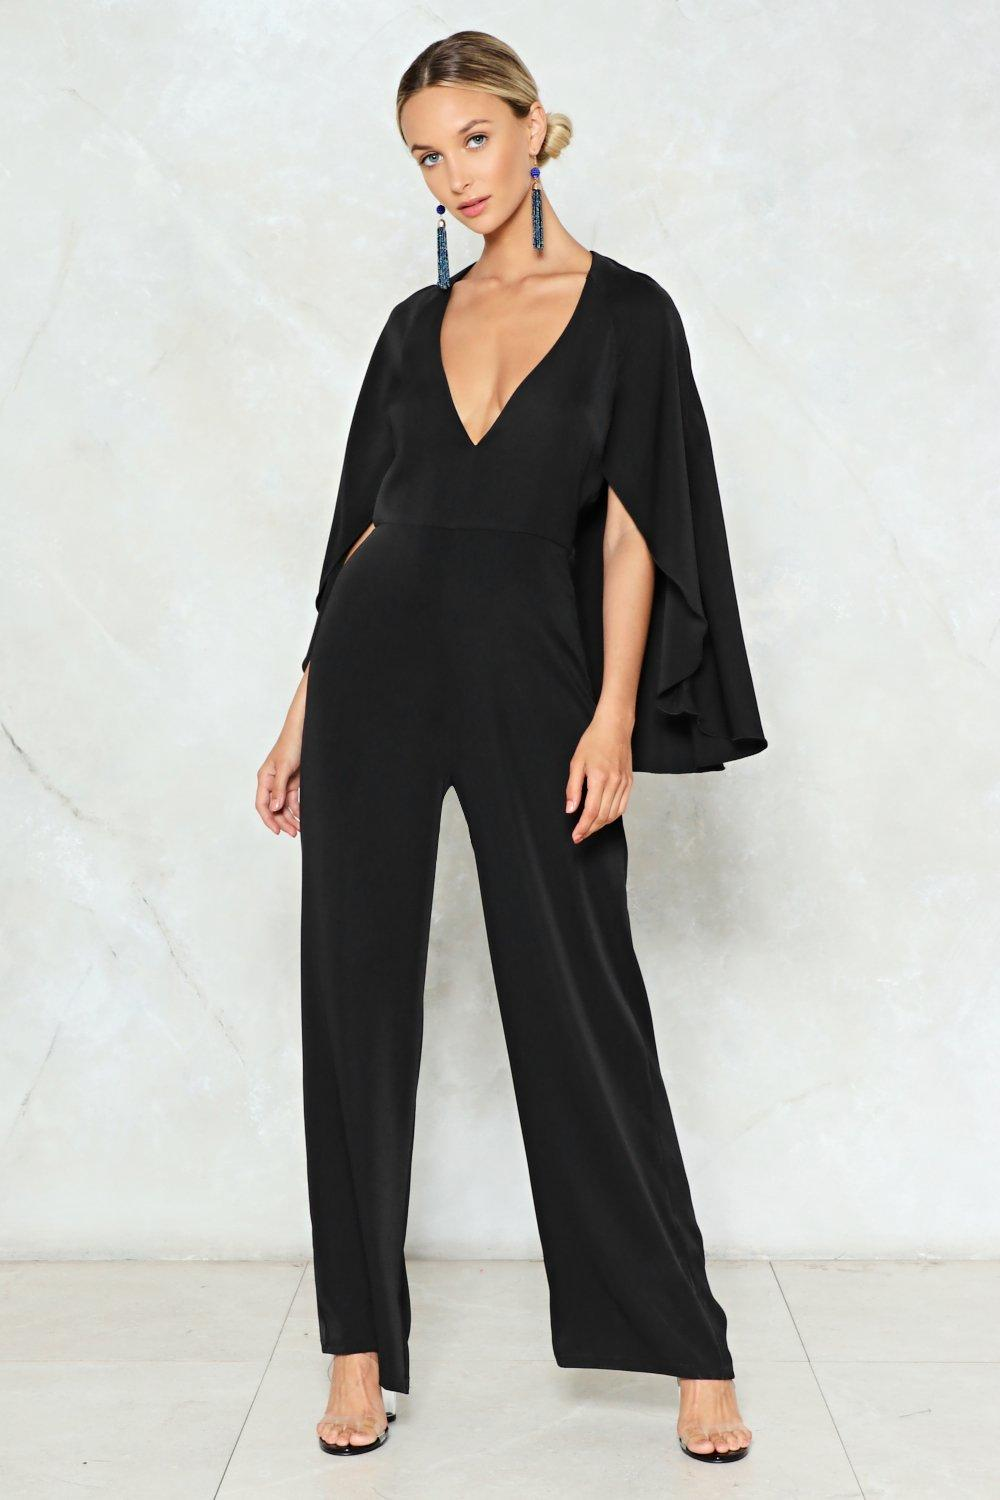 Cape Up The Good Work Plunging Jumpsuit Shop Clothes At Nasty Gal